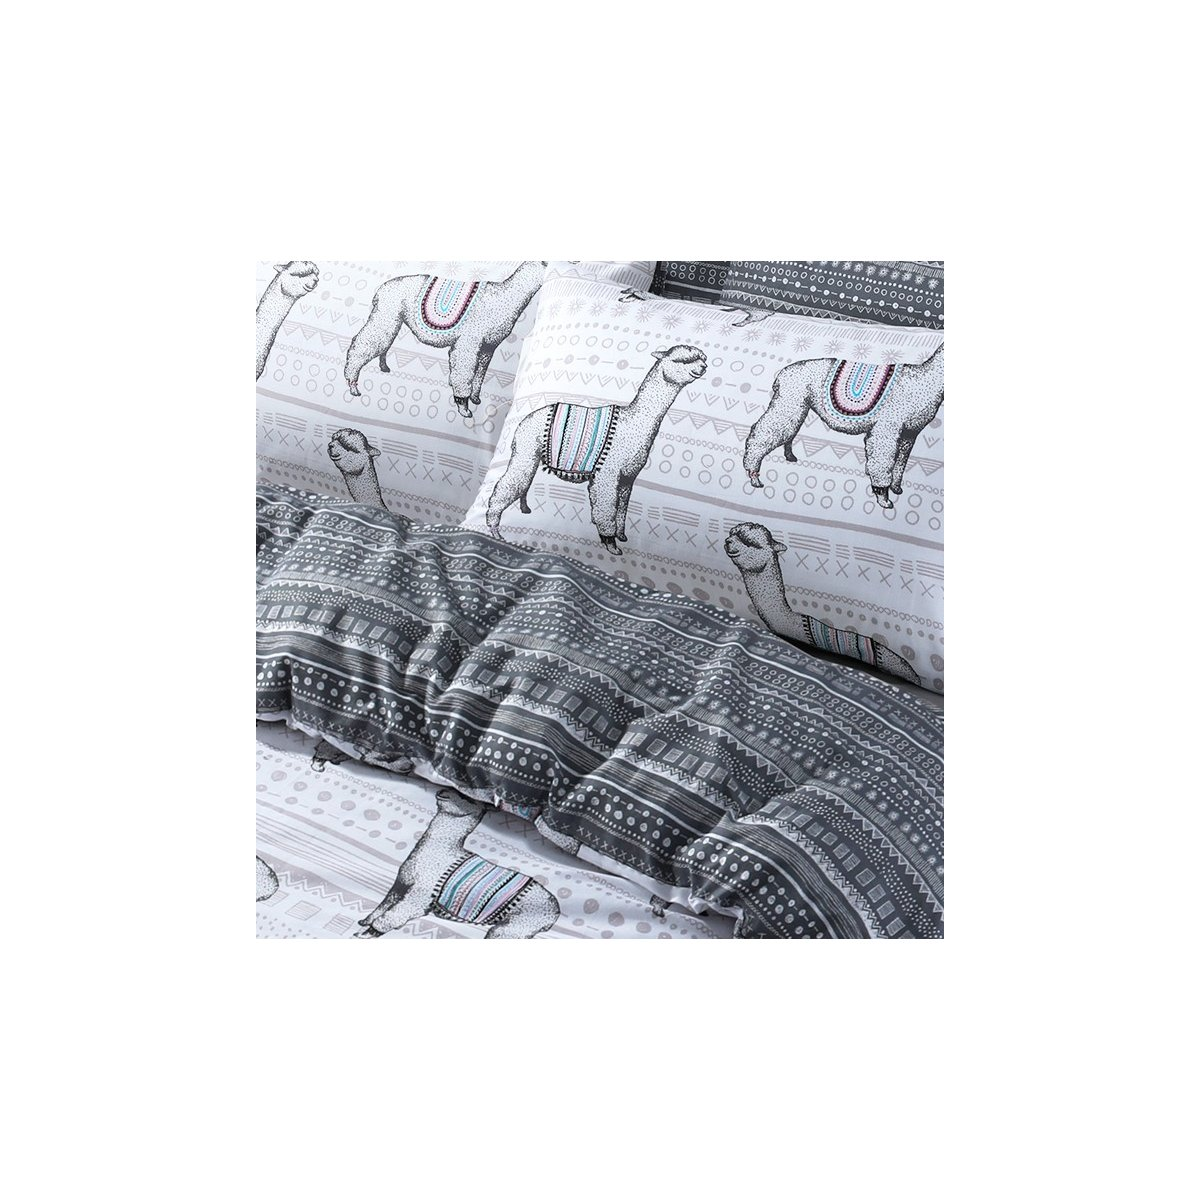 Llamas Bedding - Reversible Duvet Cover and Pillowcase Set